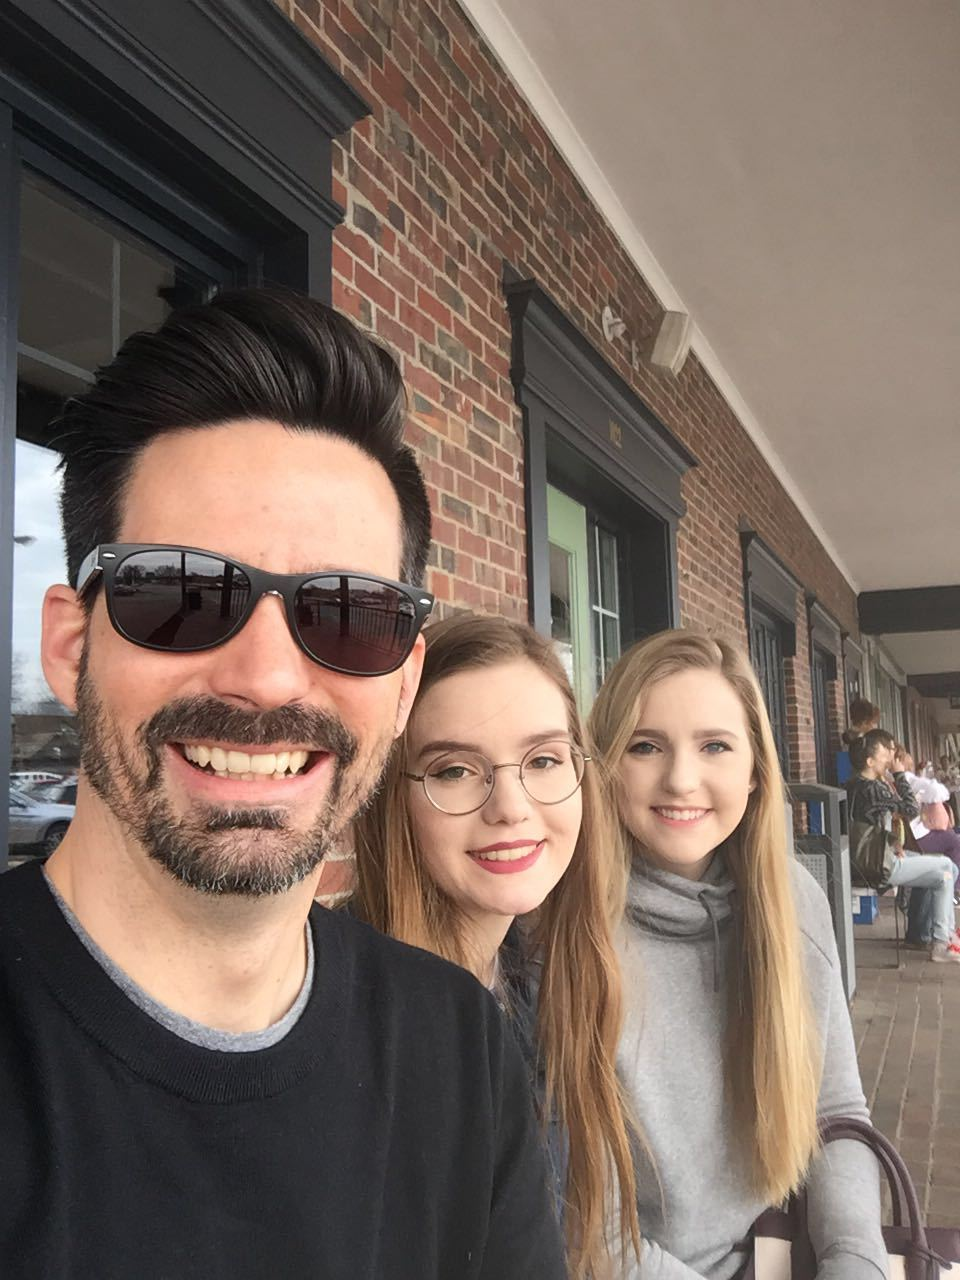 Jeremy with his daughters, isabel and alexia, waiting for a table at one of their favorite breakfast joints, first watch. they love breakfast!